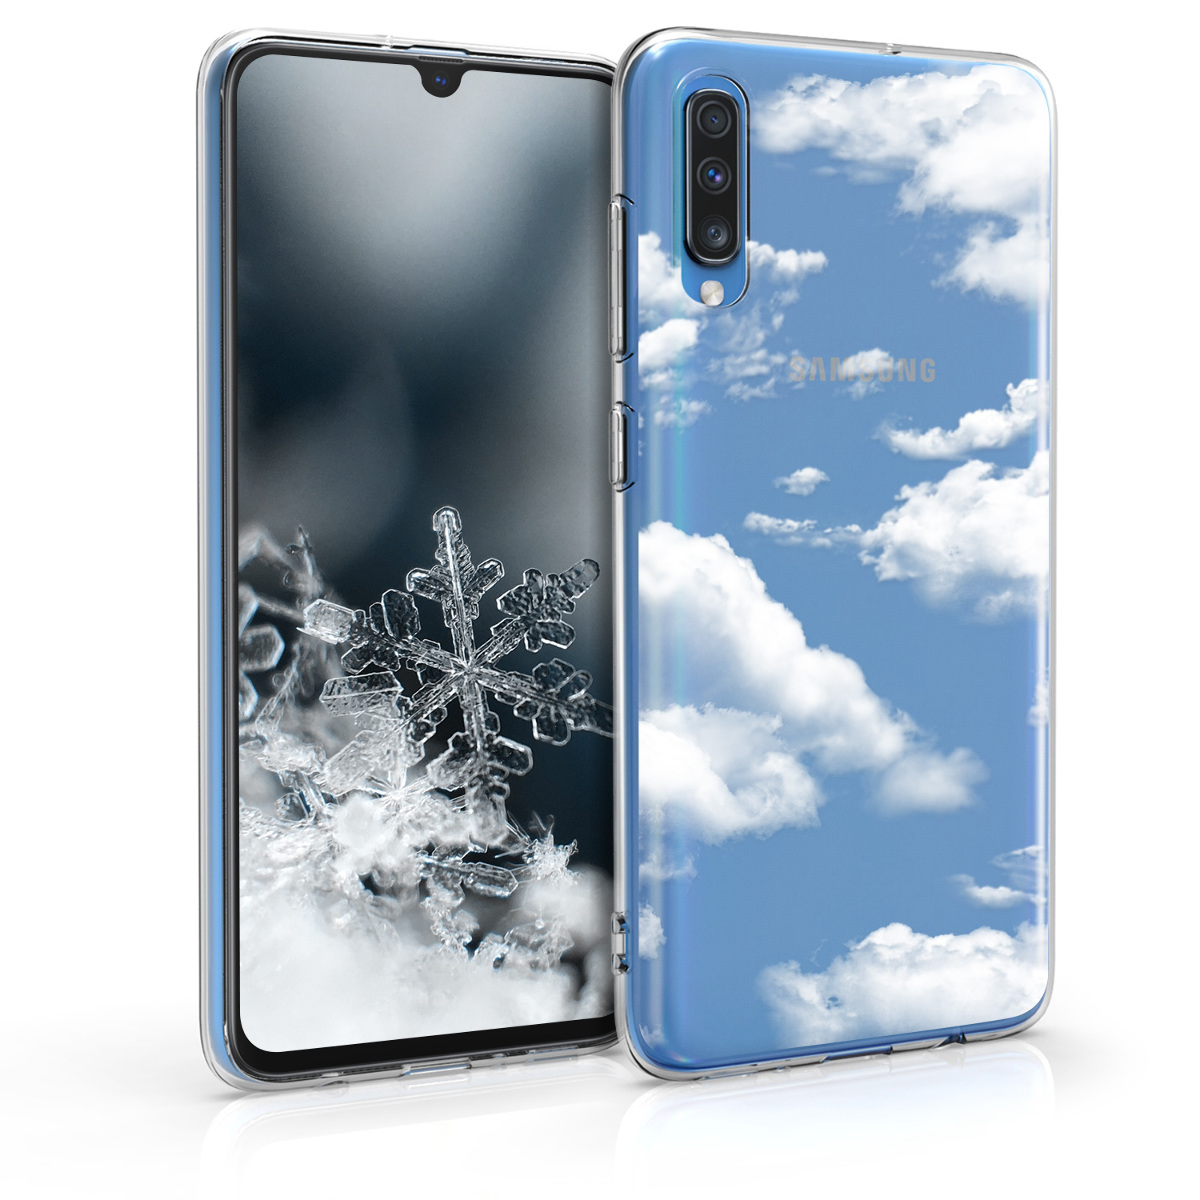 KW Θήκη Σιλικόνης Samsung Galaxy A70 - Bunch of Clouds White / Transparent (48433.14)